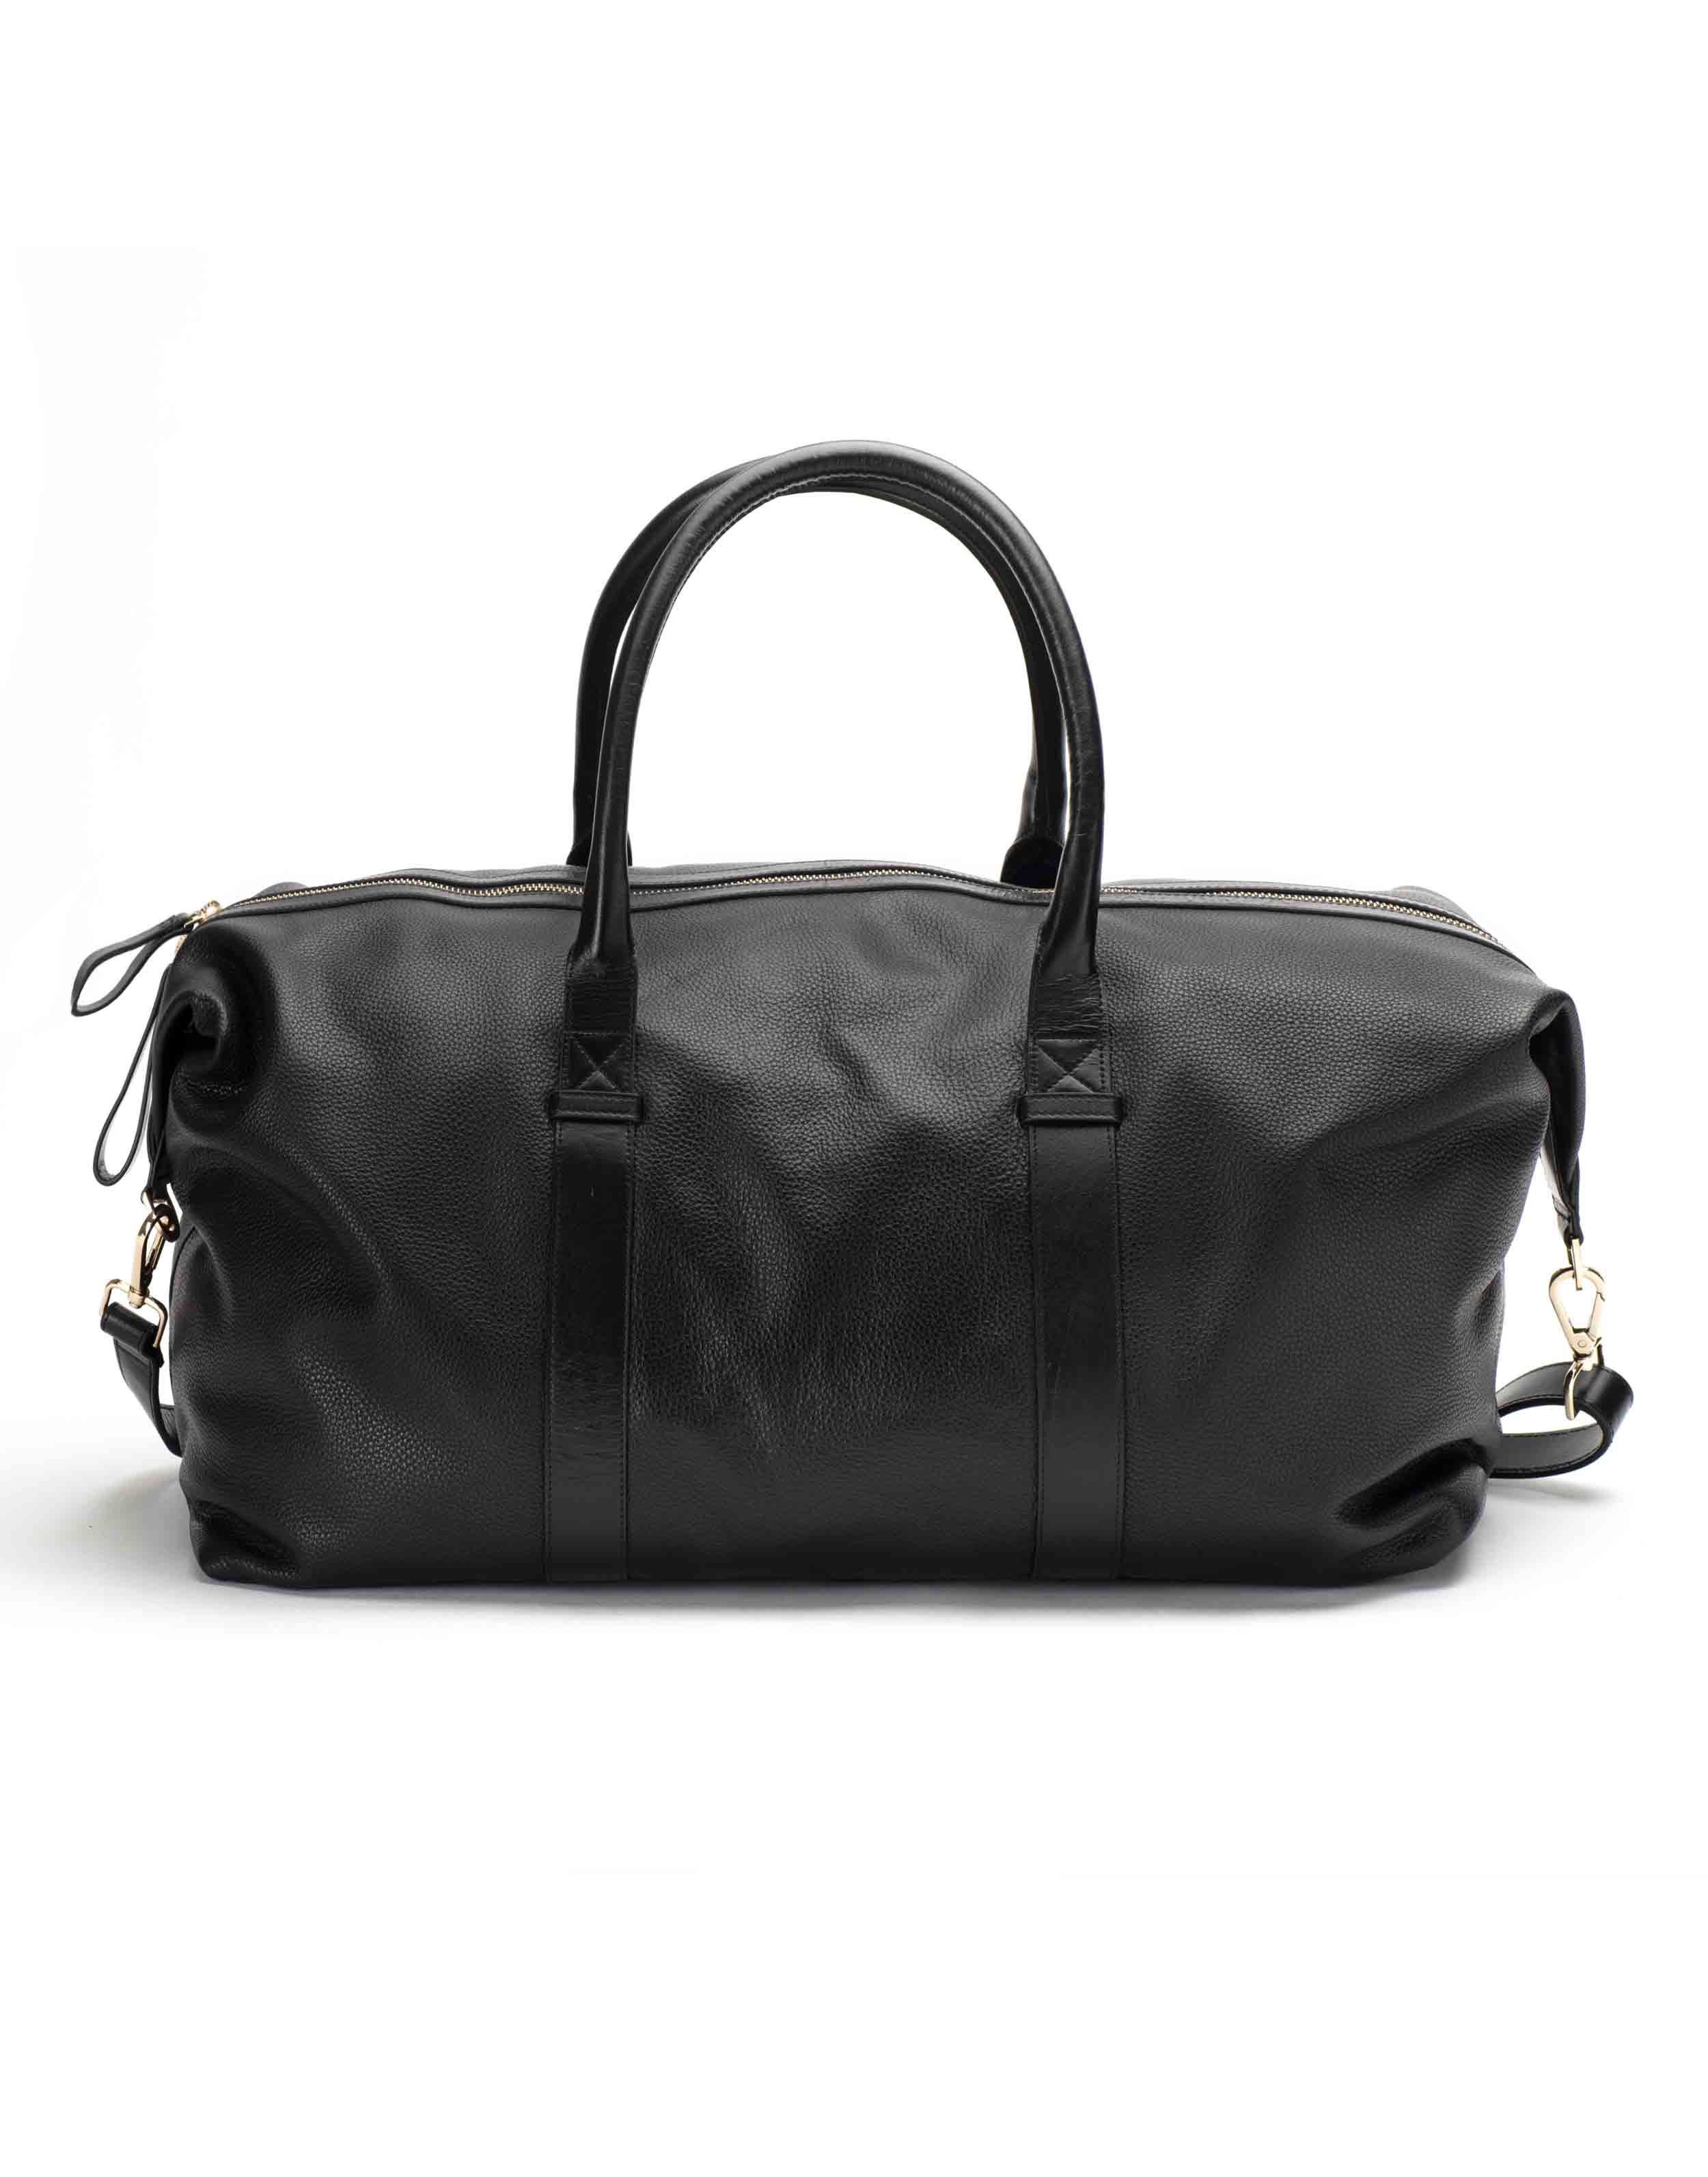 Black Textured Leather Duffle Bag3